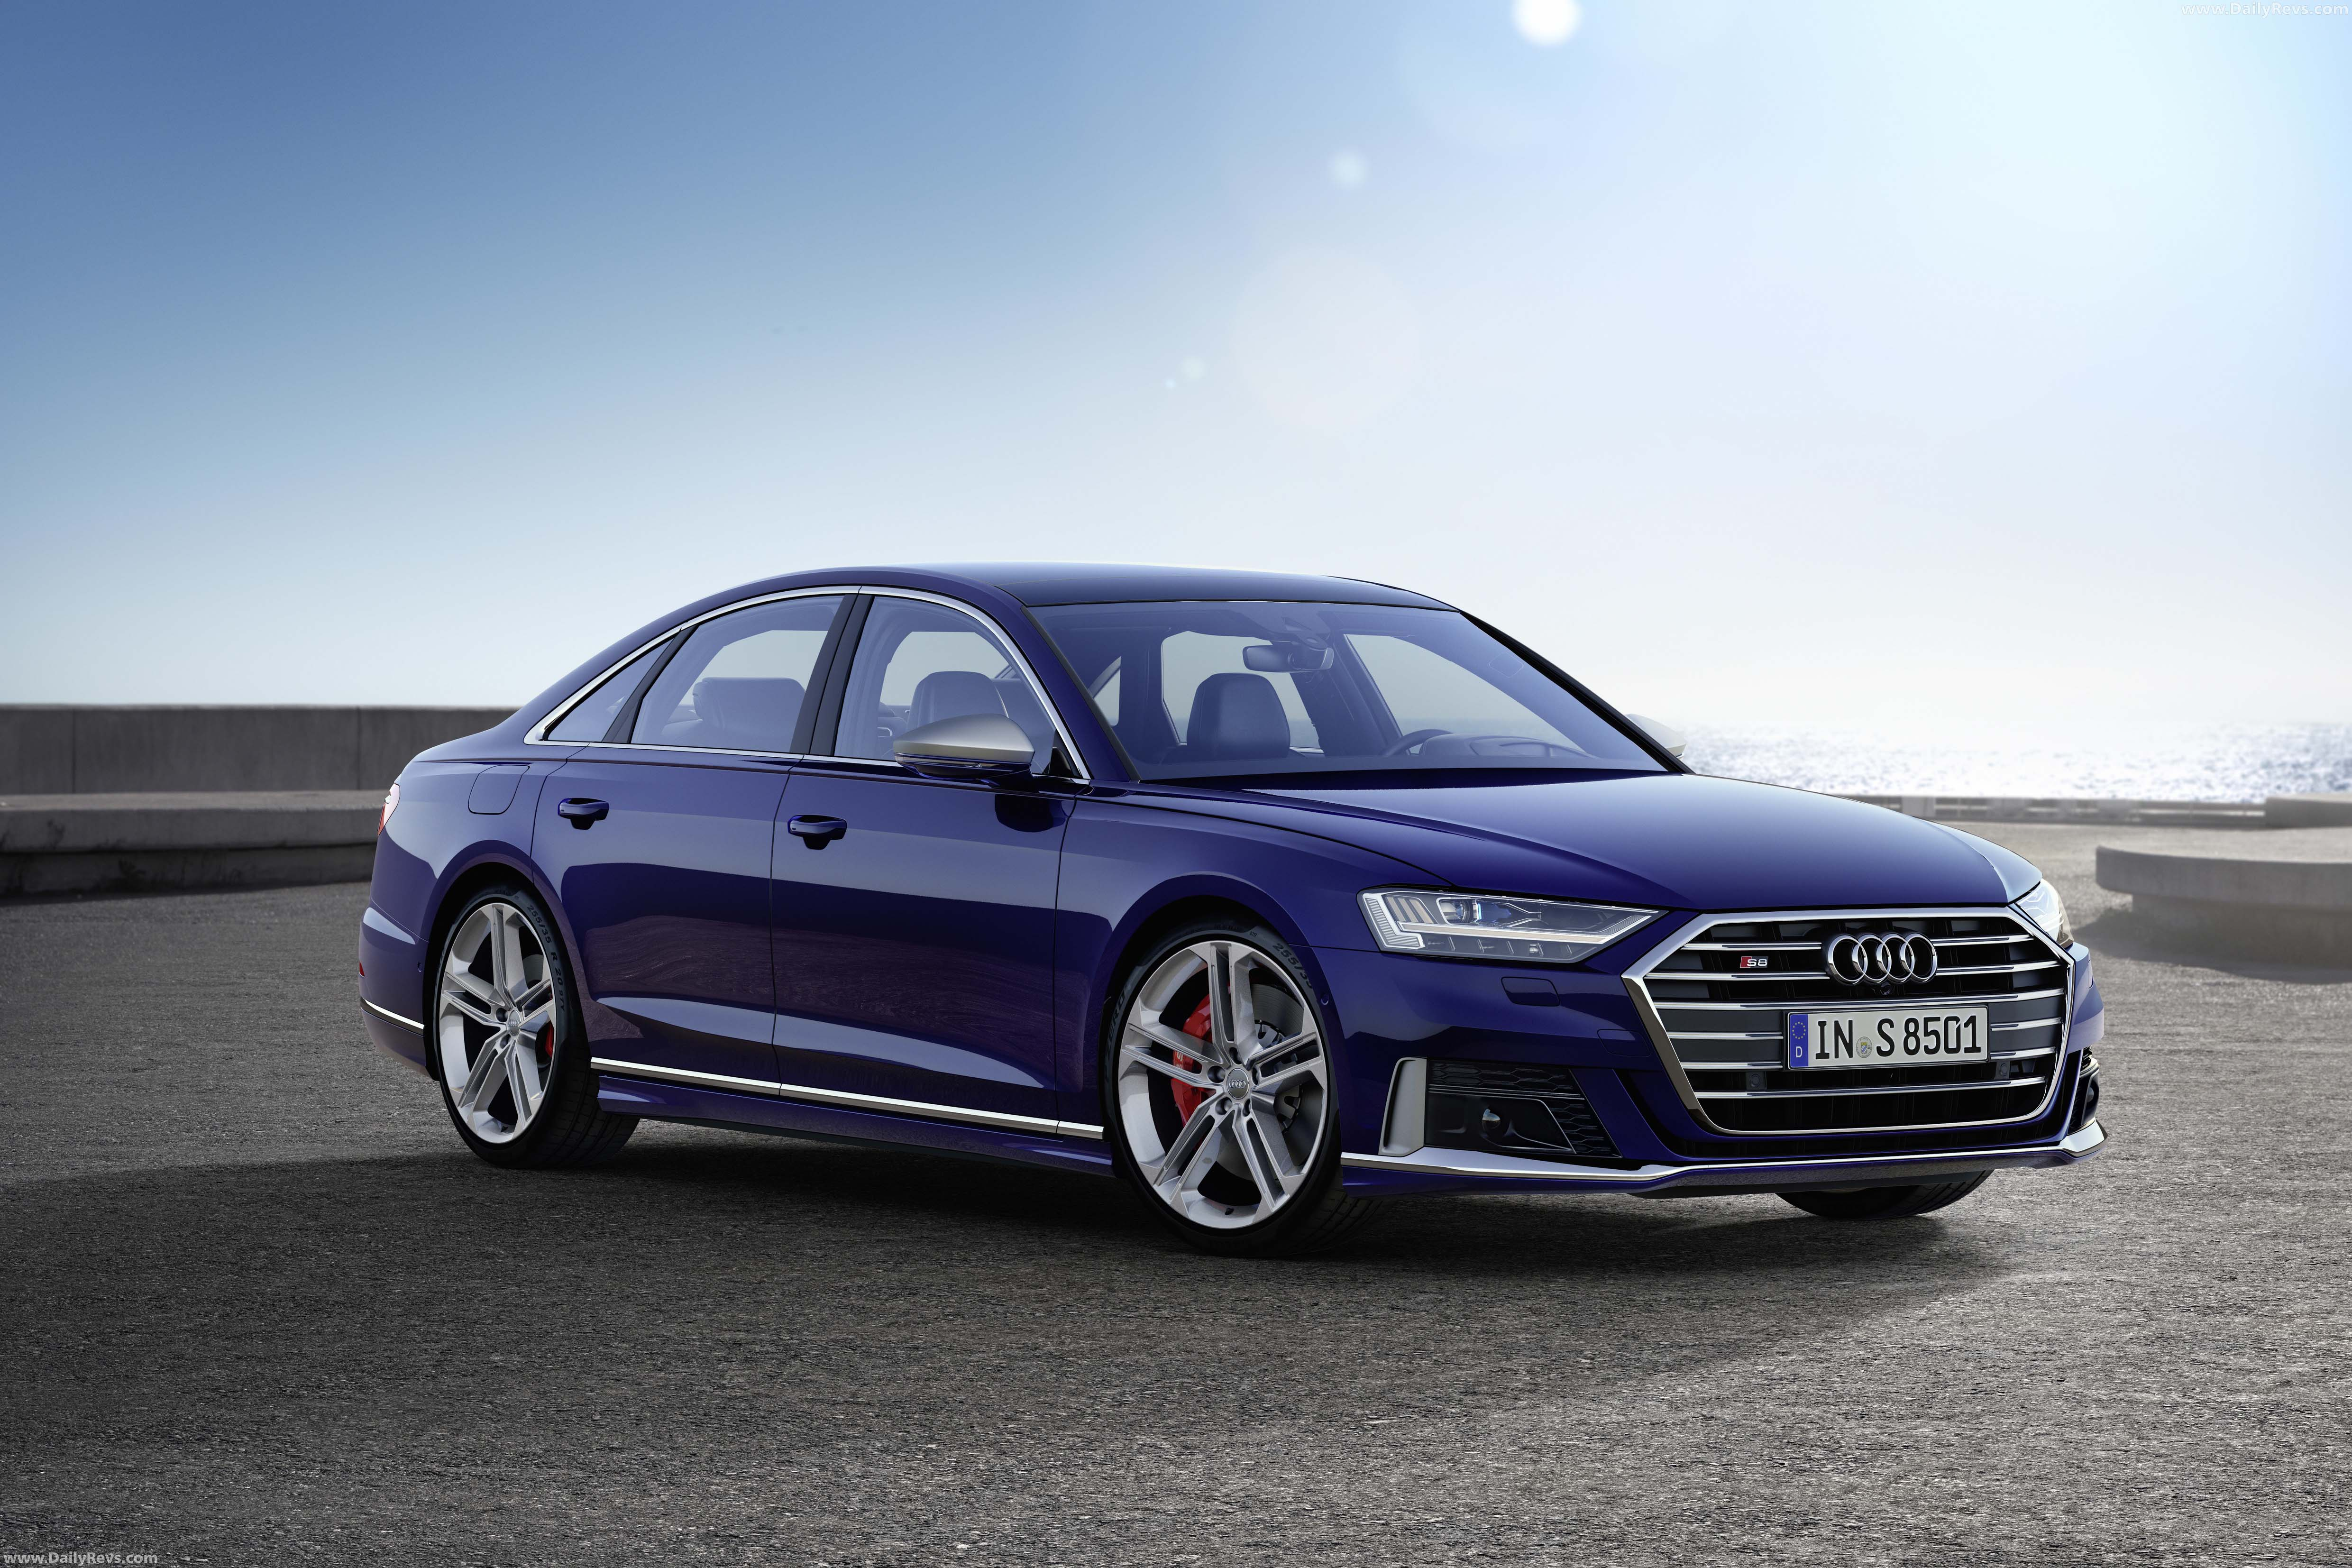 2020 audi s8 - pictures, images, photos & wallpapers